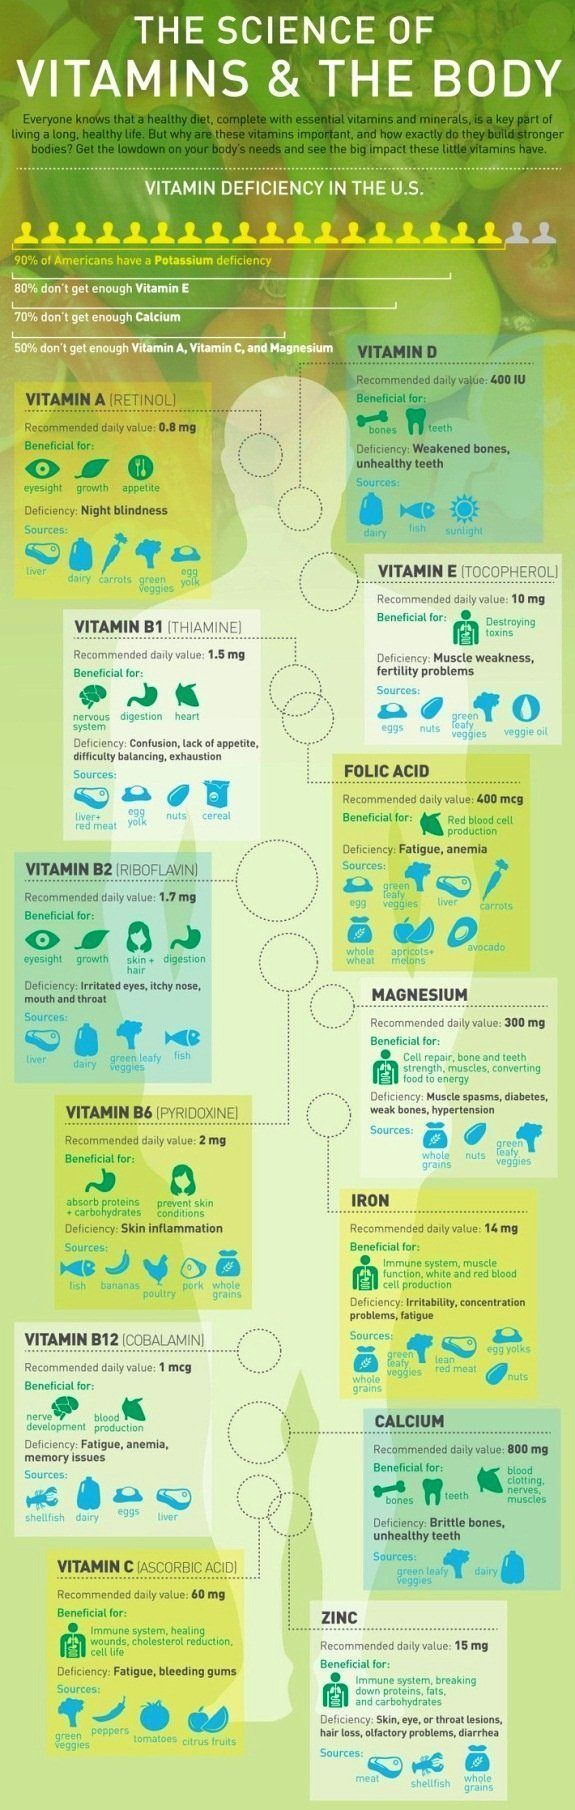 What are the benefits of vitamin A for your skin, eyes, immunity and more as well as the best vitamin A food sources plus a simple way to take it. #vitaminA #vitaminC #FF #followback